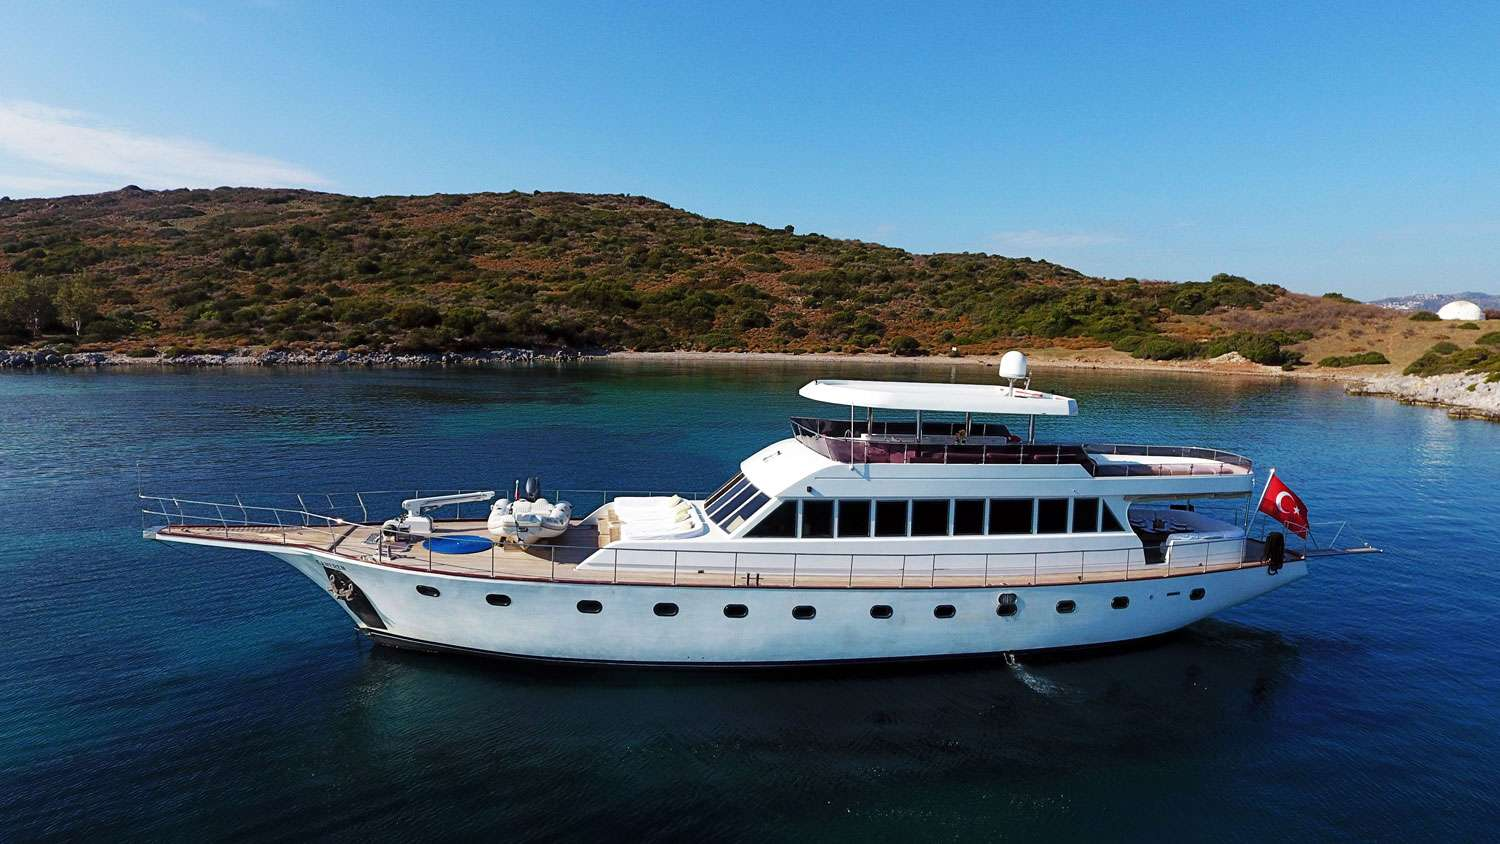 Refitted in 2014, CANEREN offers an abundance of both interior and exterior space for guests thanks to her large motor yacht style saloon and extended flybridge. There is capacity to accommodate up to 9 passengers in 4 guest cabins which include 3 very comfortable double cabins and a pullman triple cabin. She is an ideal choice for 3 couples looking for a yacht with equal size accommodation for each couple. Though CANEREN can accommodate up to 9 guests, she is restricted to a maximum carrying capacity of eight on international voyages. The flexibility to offer fine dining on the aft deck as well as the flybridge means guests on board have access to pleasant change of scenery as they please. Lazy days on the Med are what is awaiting guests on board CANEREN but with plenty of water toys on board and a crew of 4 to make sure everything is catered for means you can always have action whenever you want.